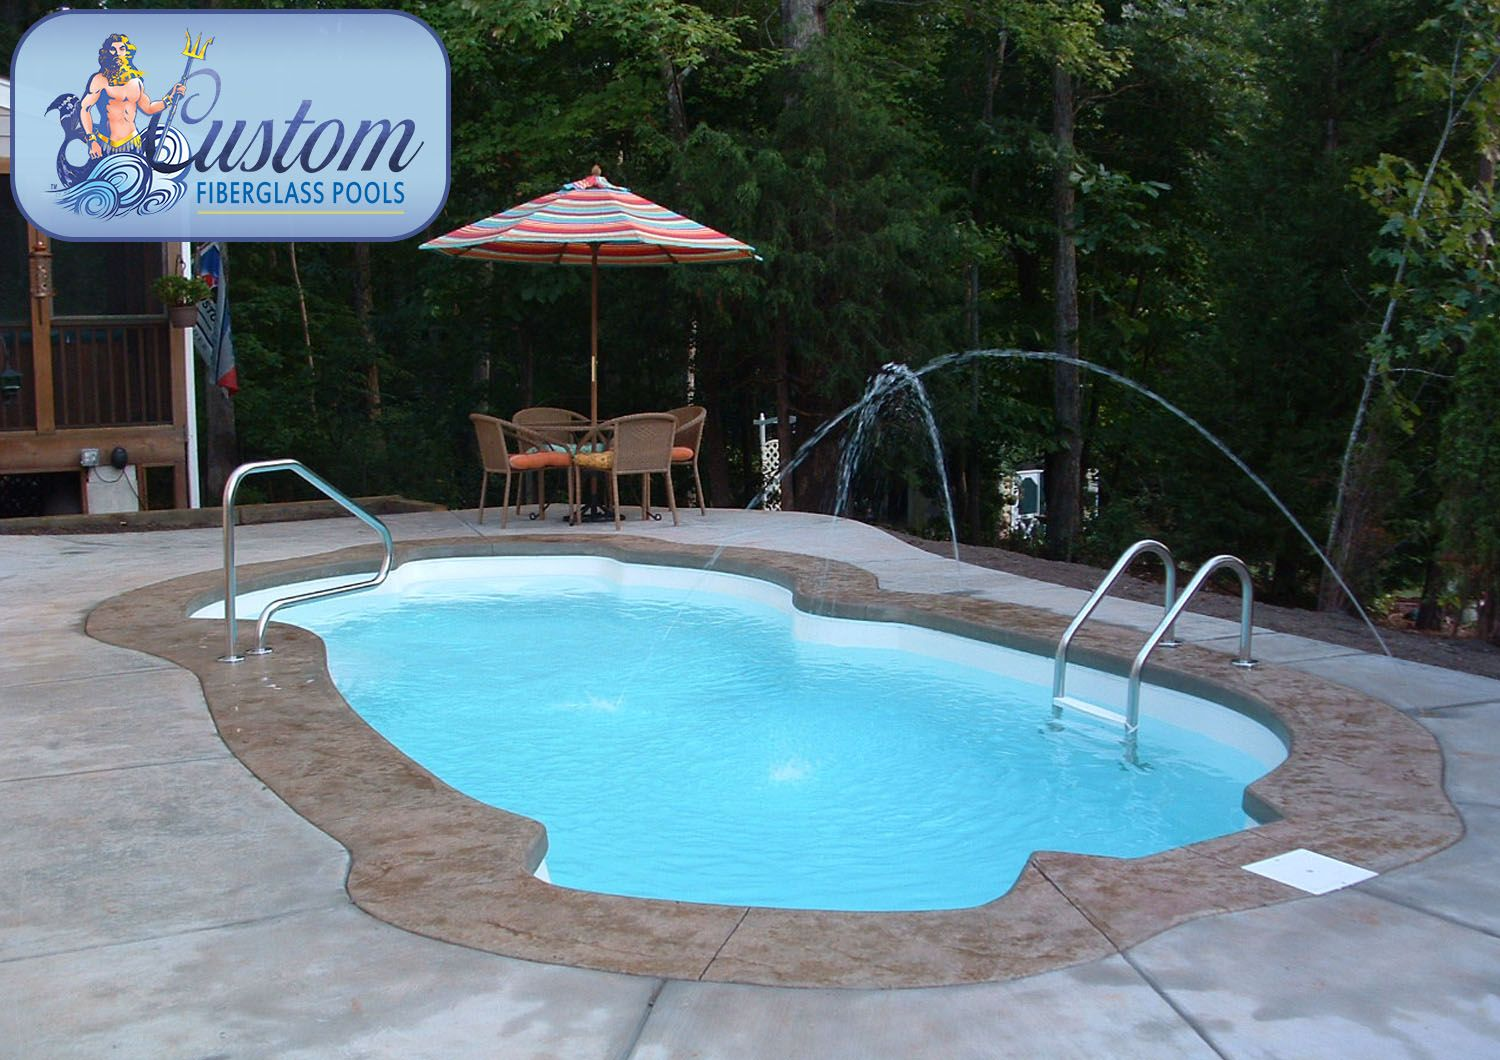 Cancun 12x25 Awesome Pools is located in Apison Tennessee and